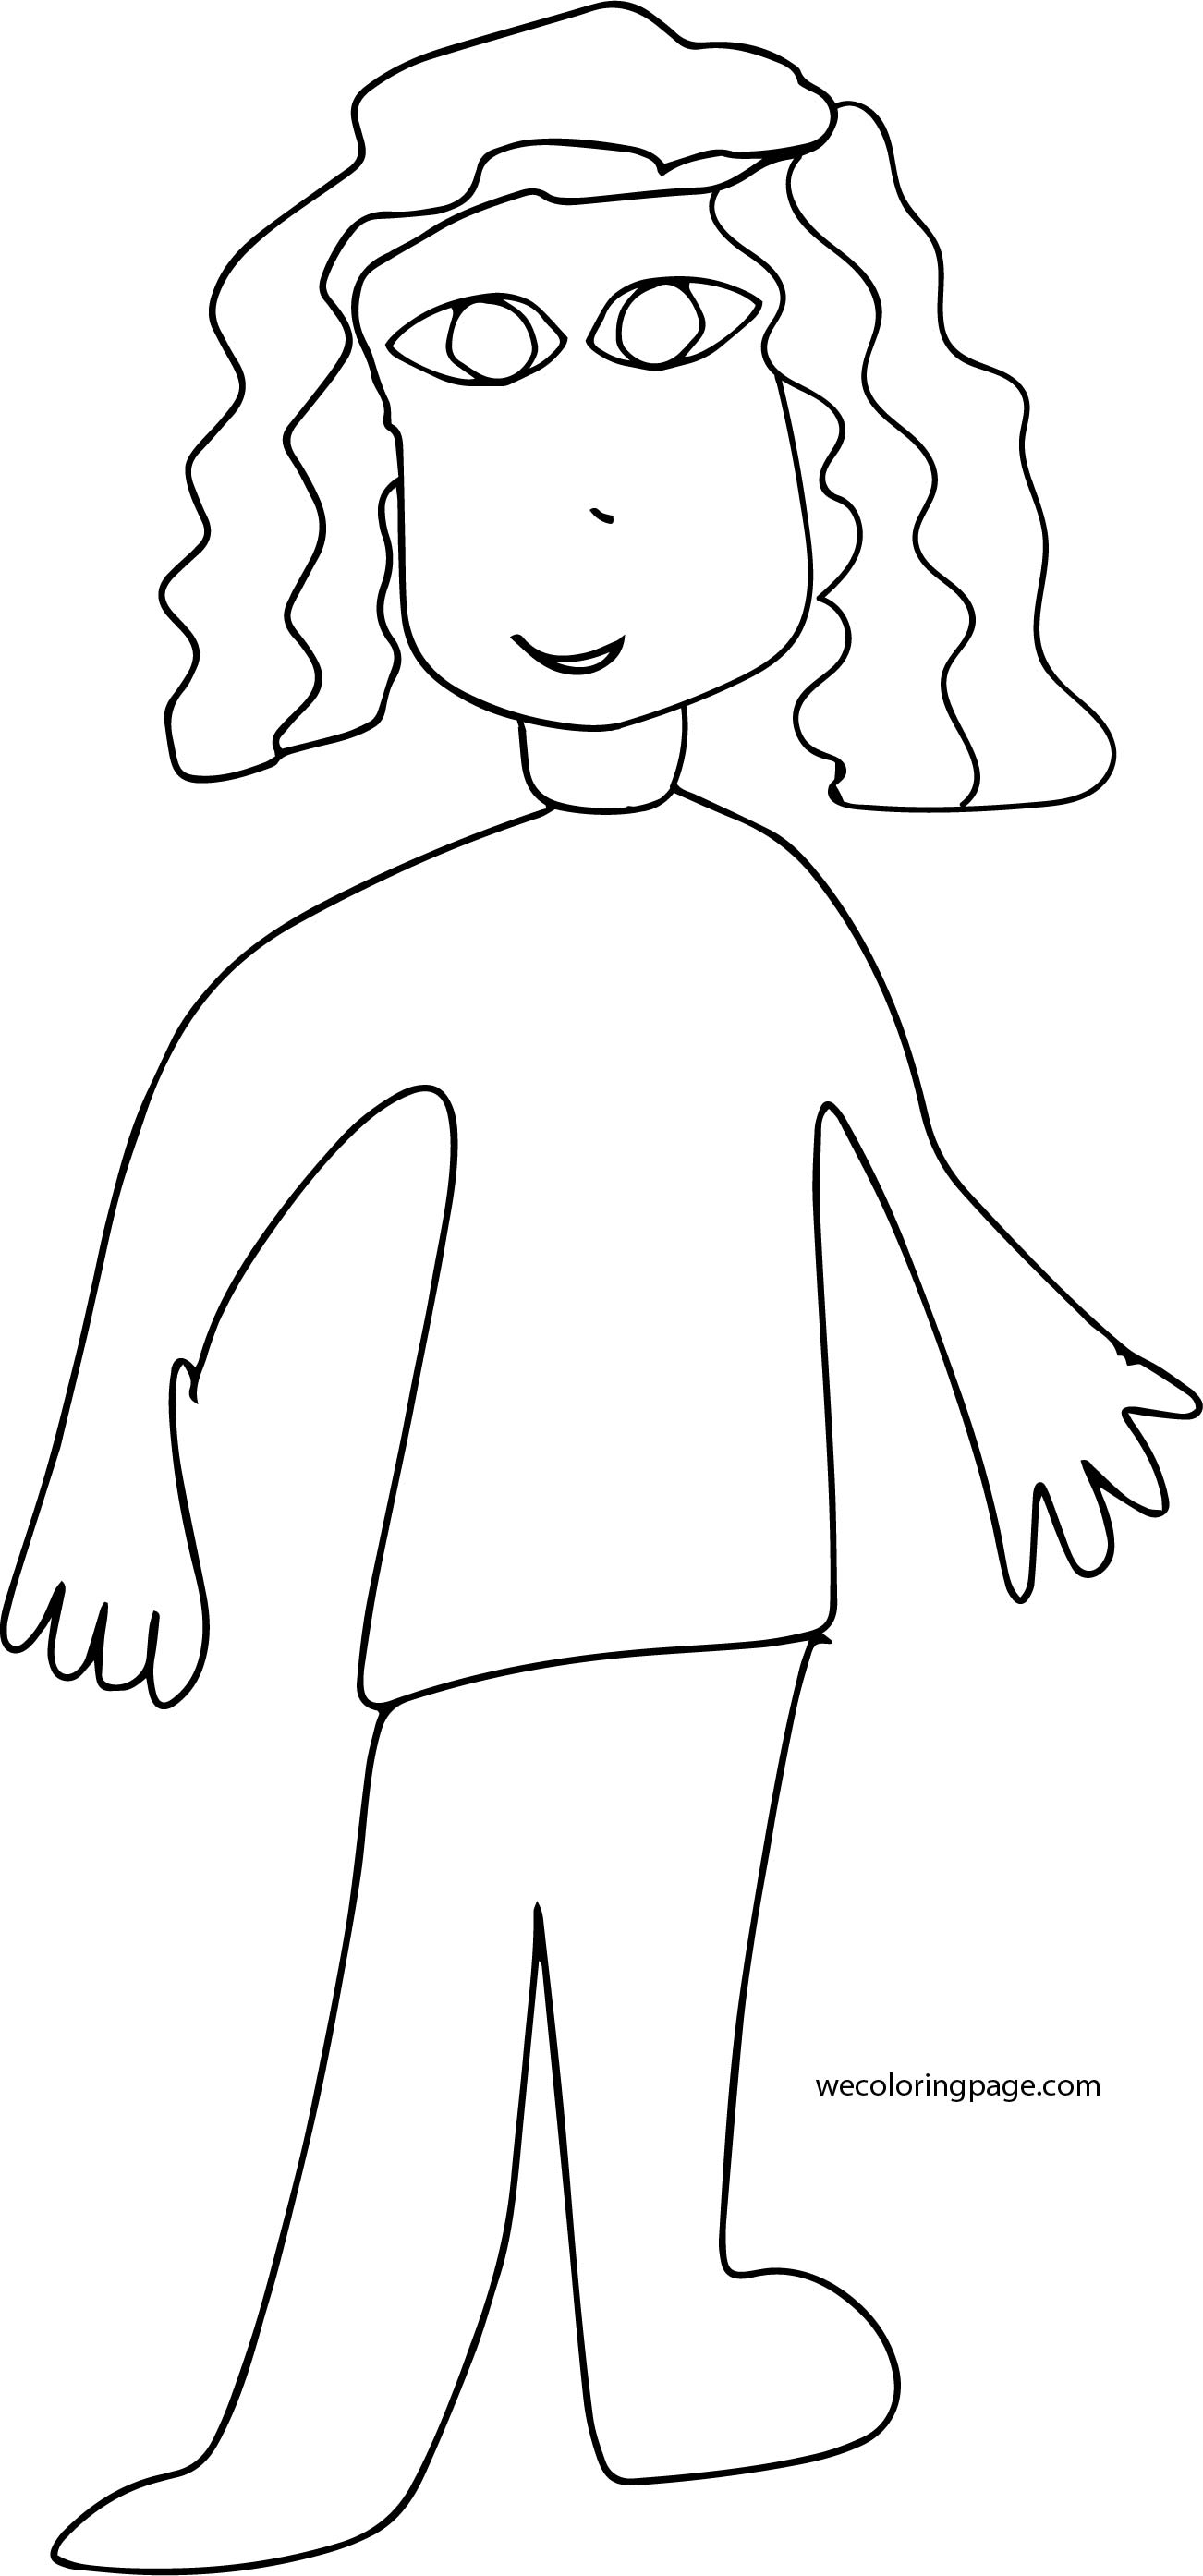 Drawing Girl Coloring Page